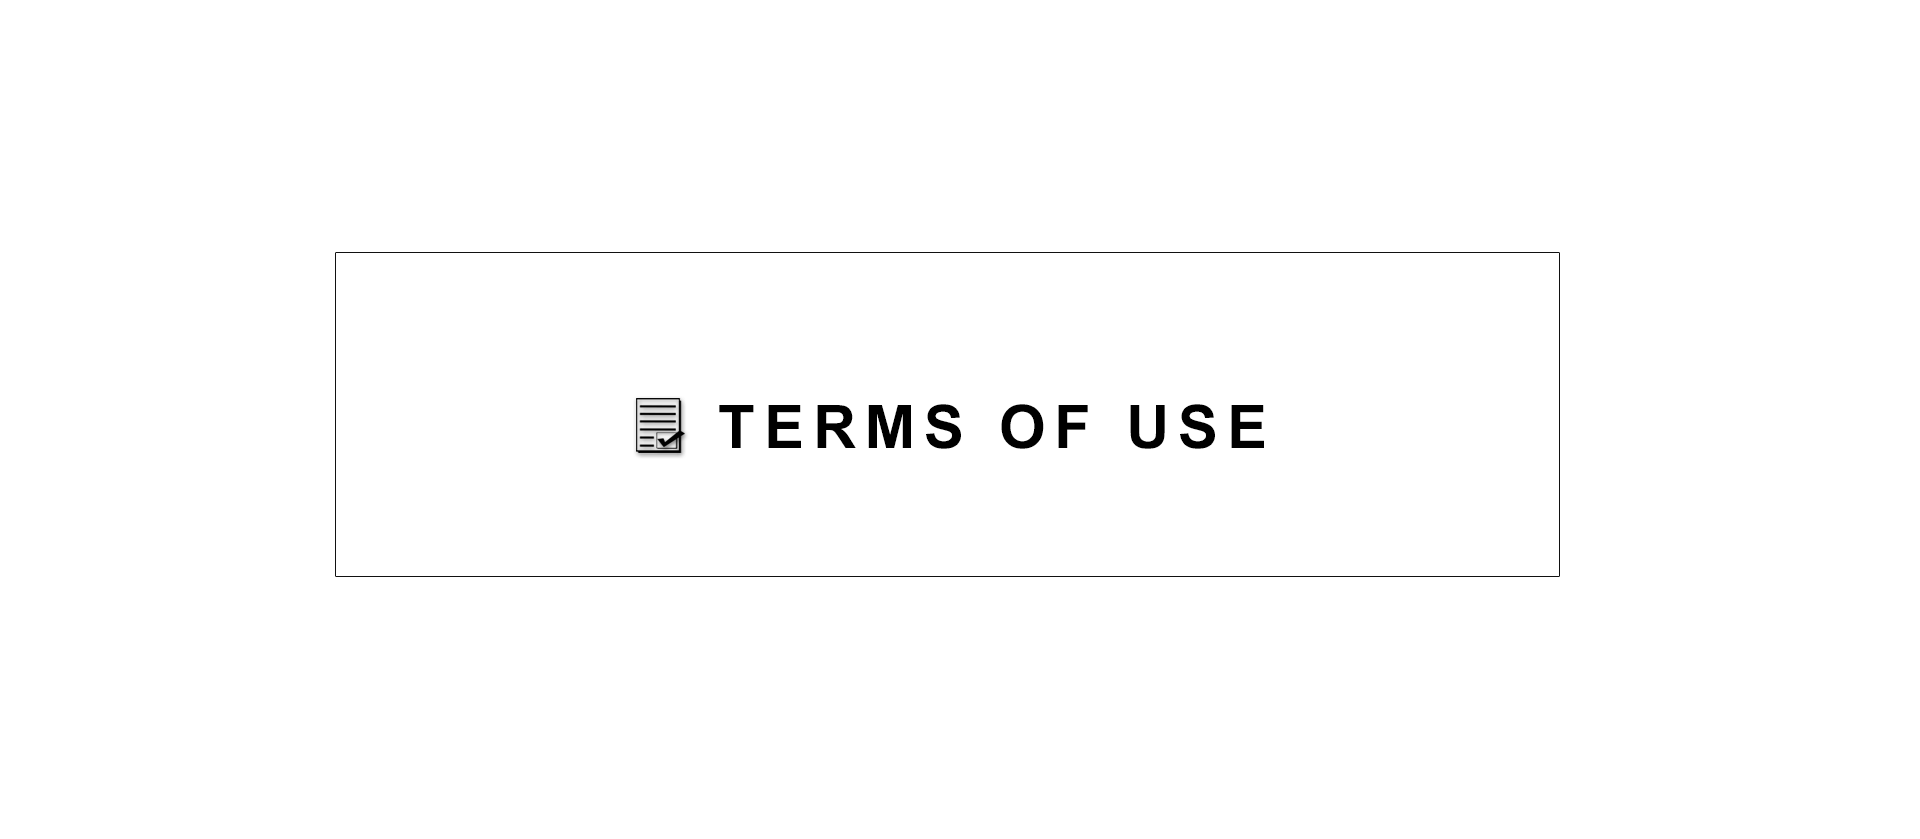 Terms of Use sign